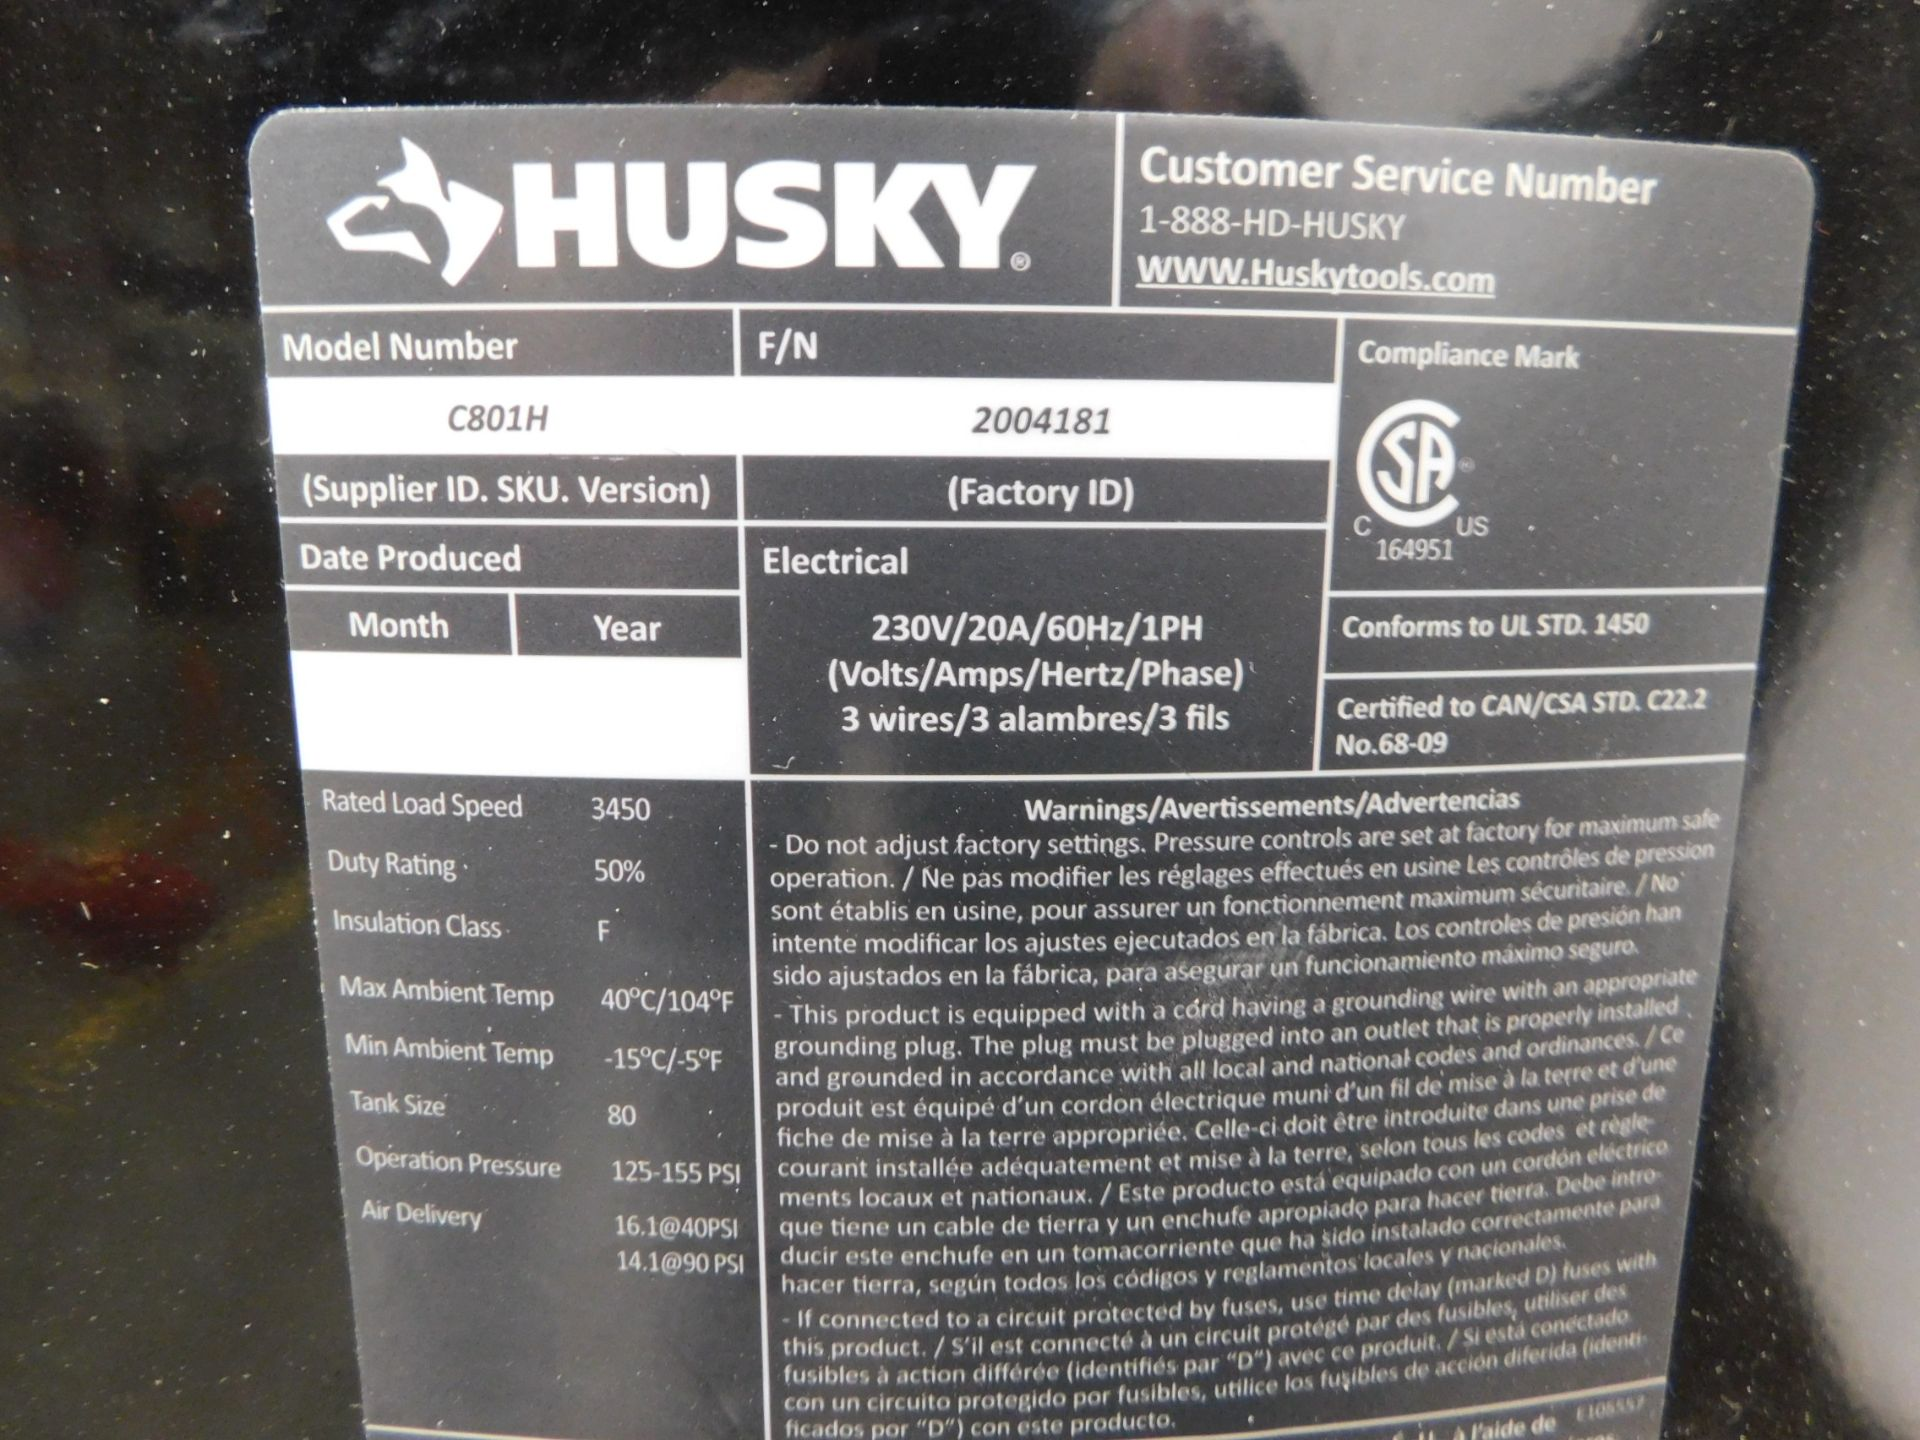 Lot 51 - Husky 4.7 HP Tank-Mounted Vertical Air Compressor, Model C801H, SN 2004181, 80 Gallon Tank, 14